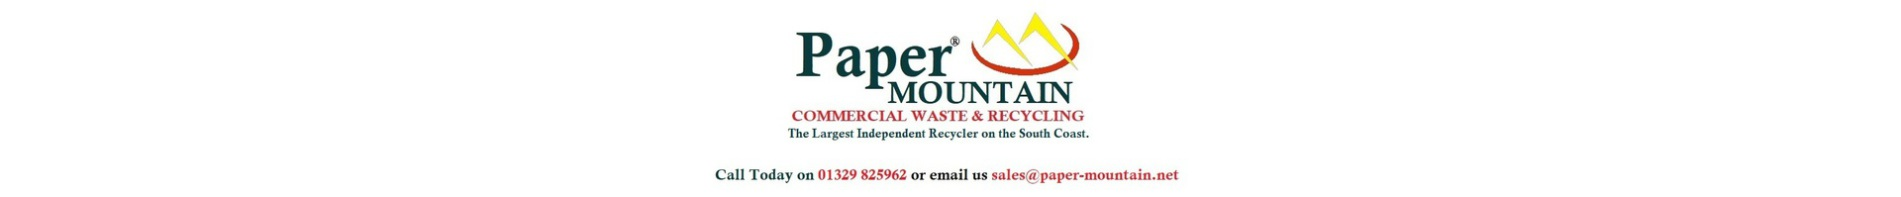 Paper Mountain Commercial Waste & Recycling - The largest independent recycler on the south coast.